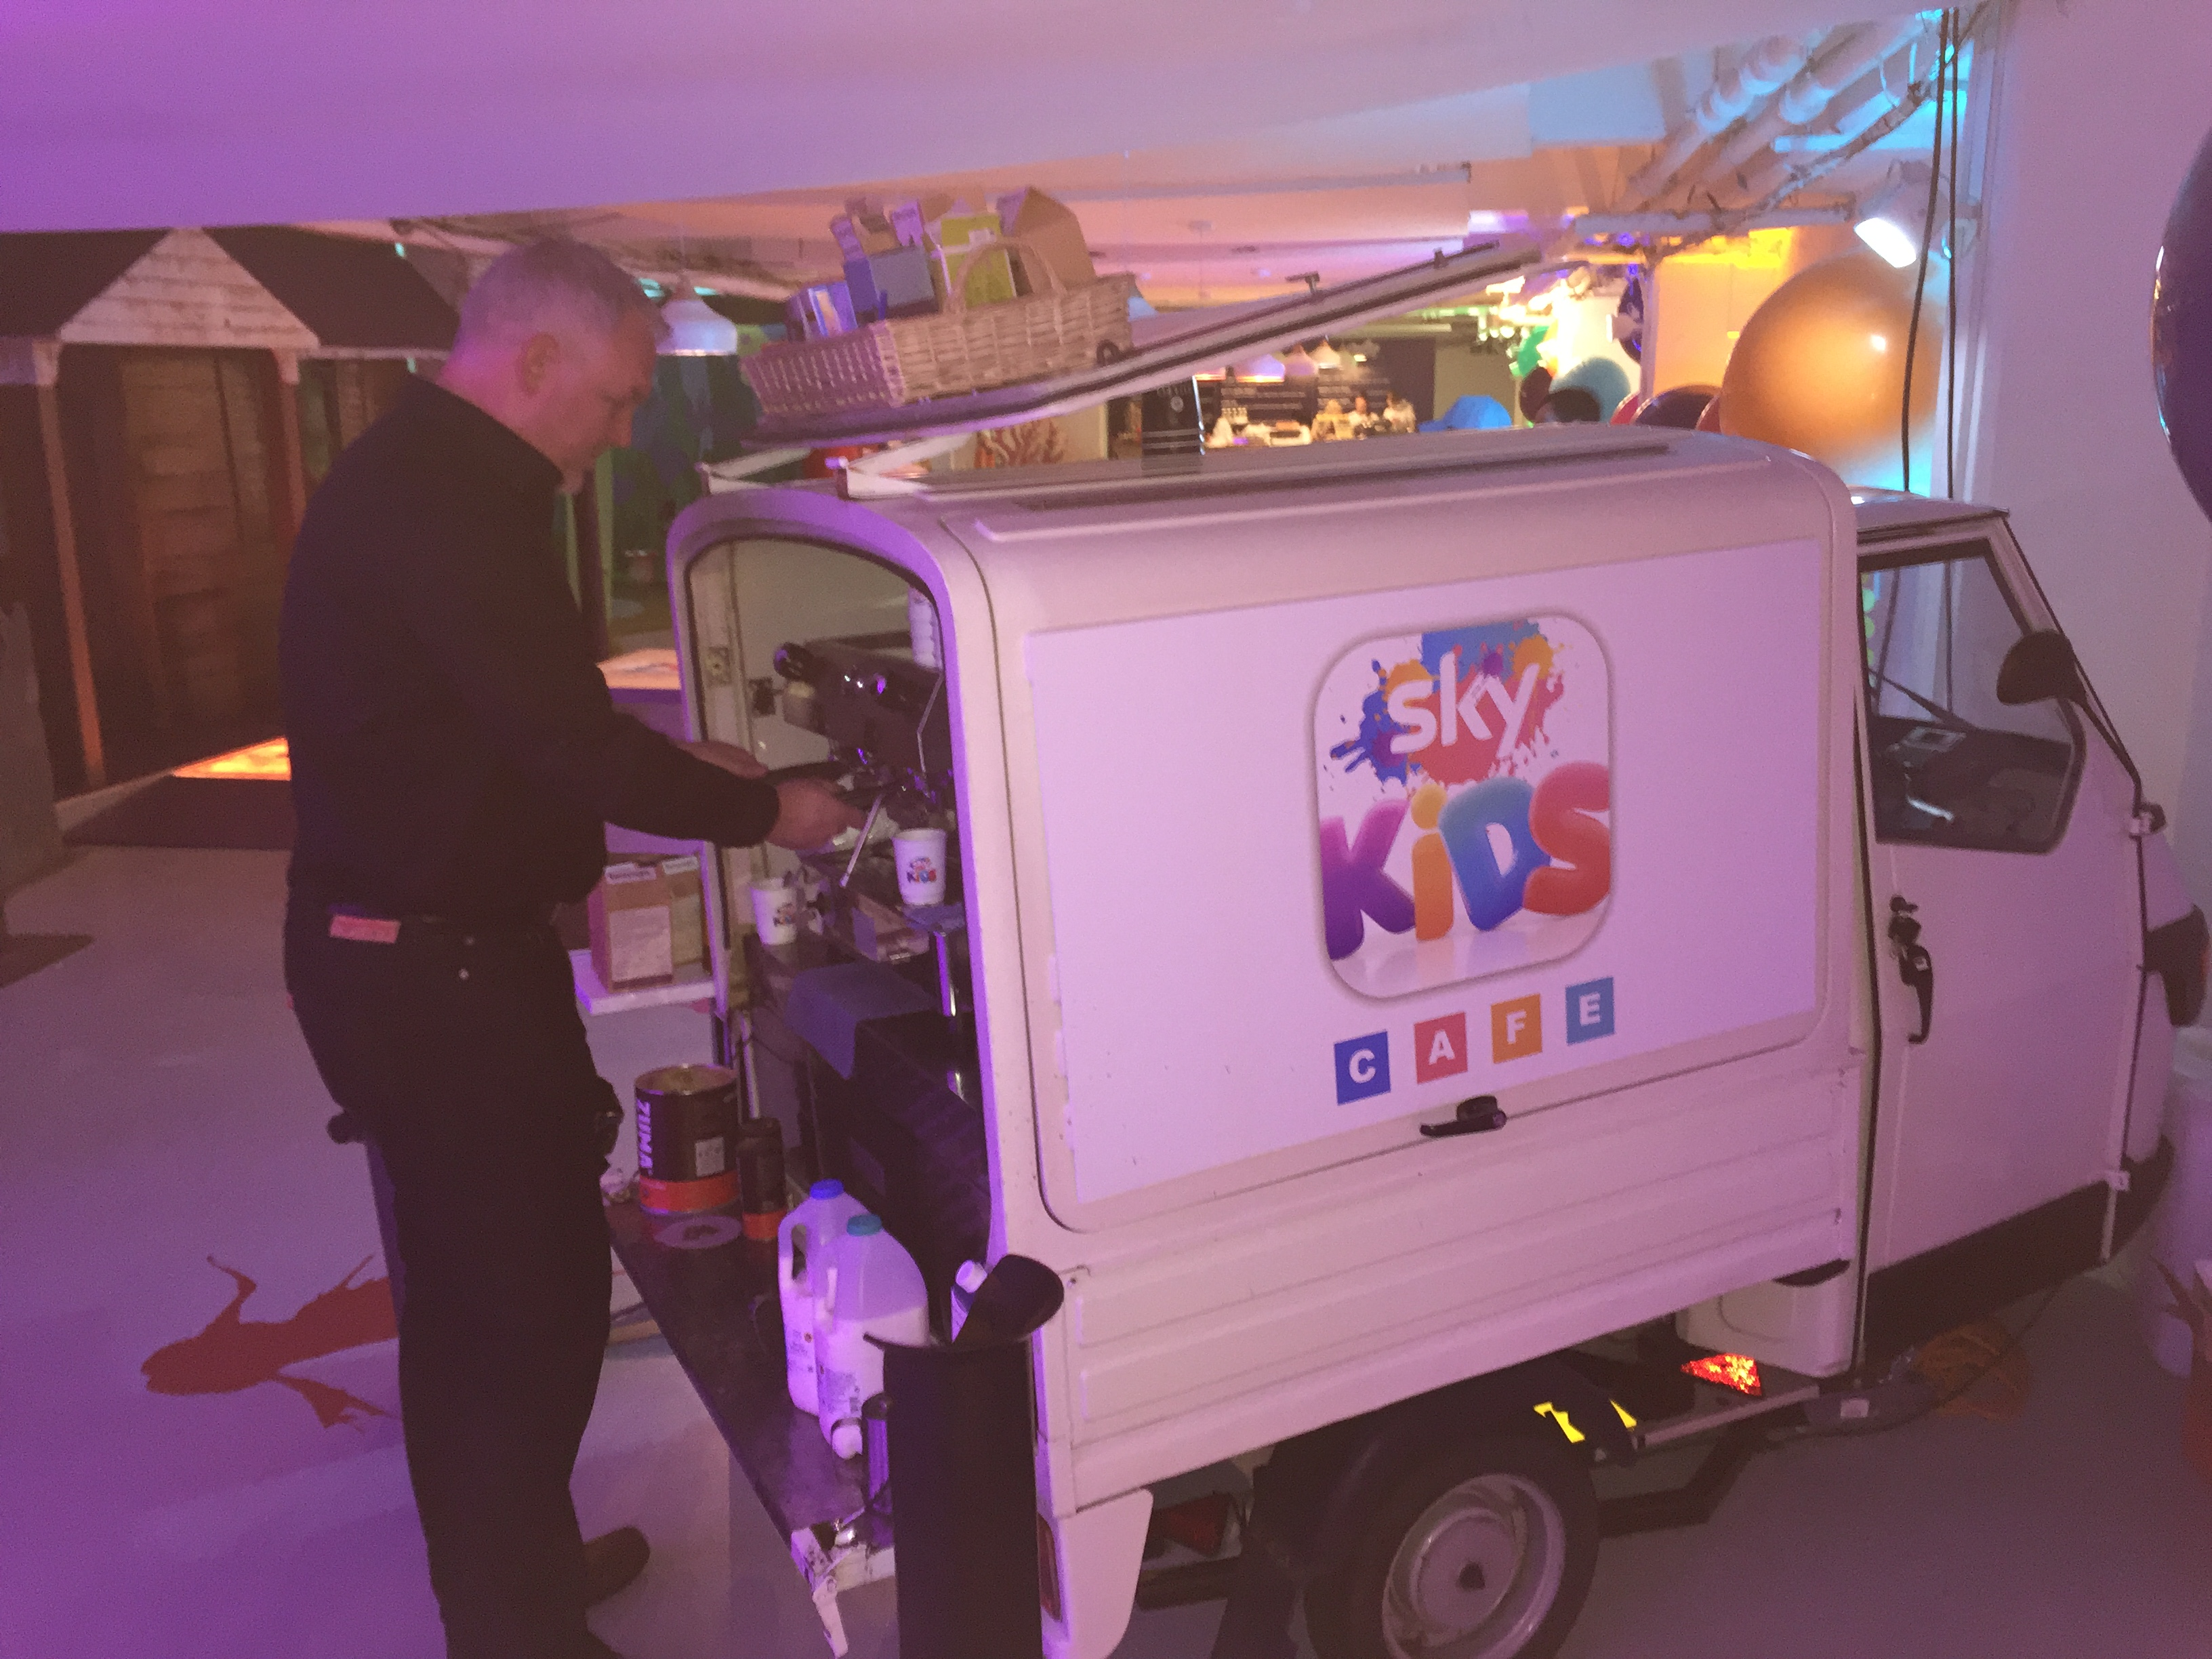 Photos of mobile coffee van, cart and bar hire - The Mobile Coffee Bean corporate branded mobile coffee van hire for Sky Kids cafe